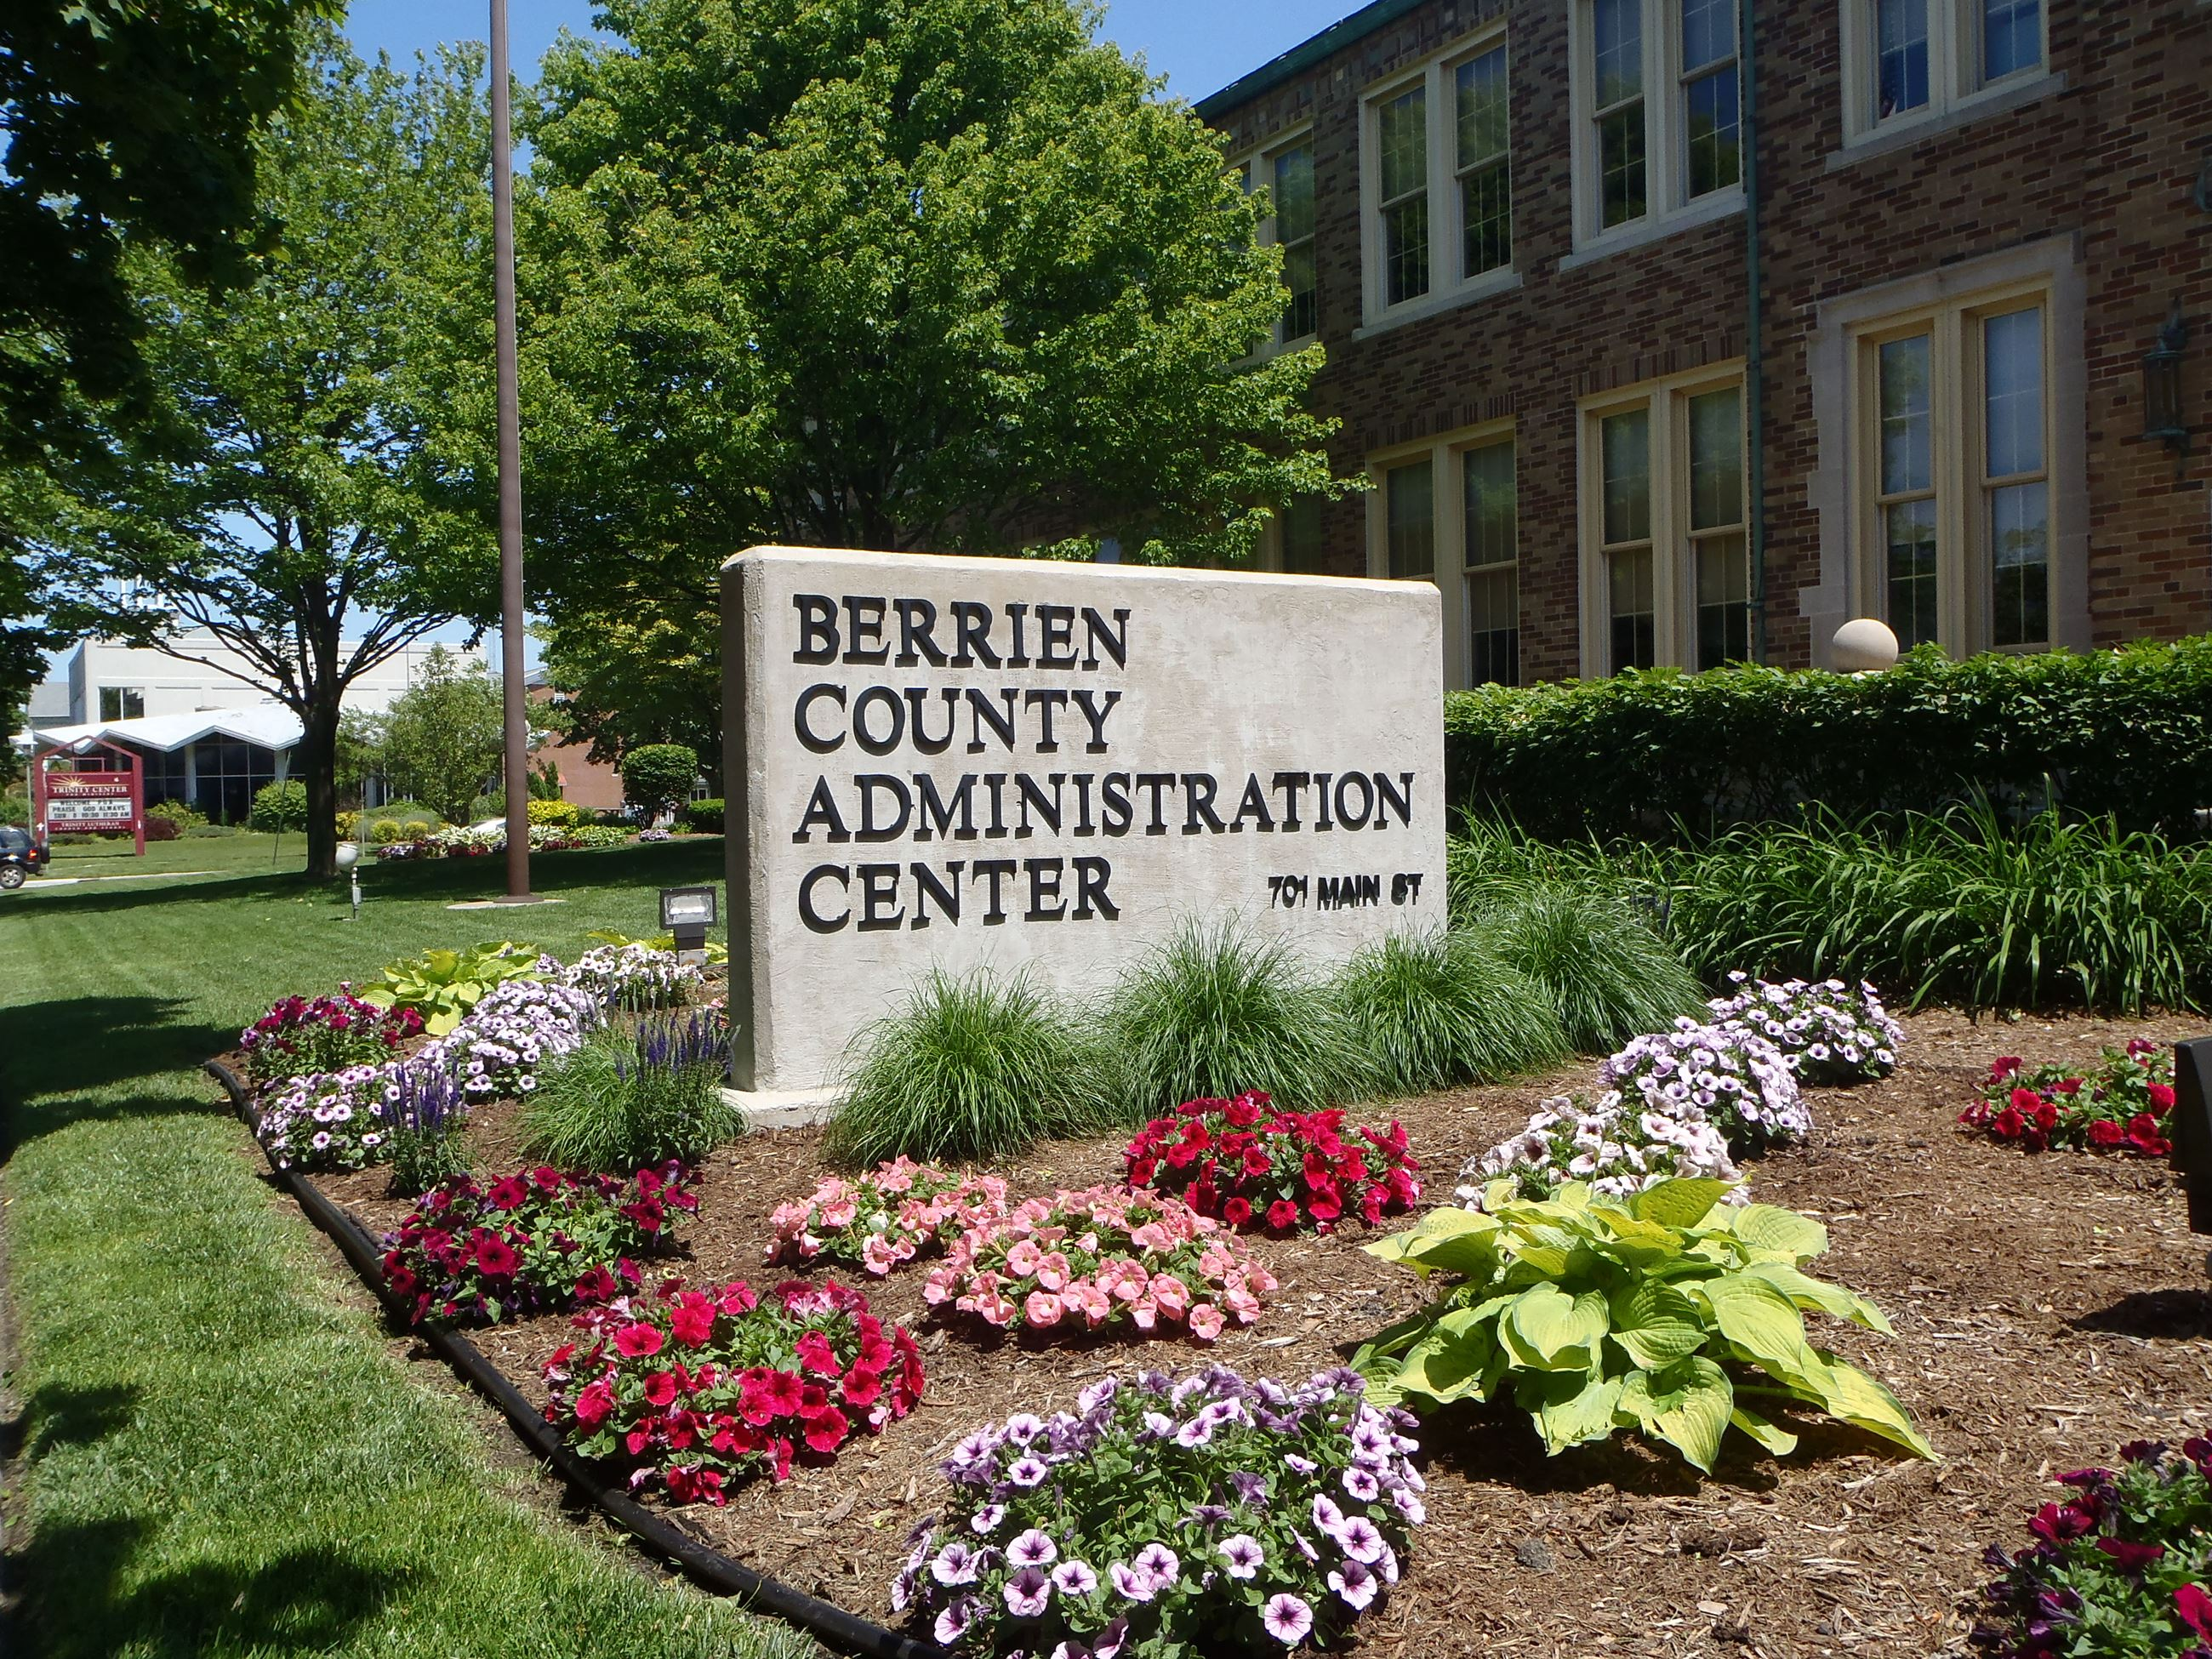 Berrien County Administration Center